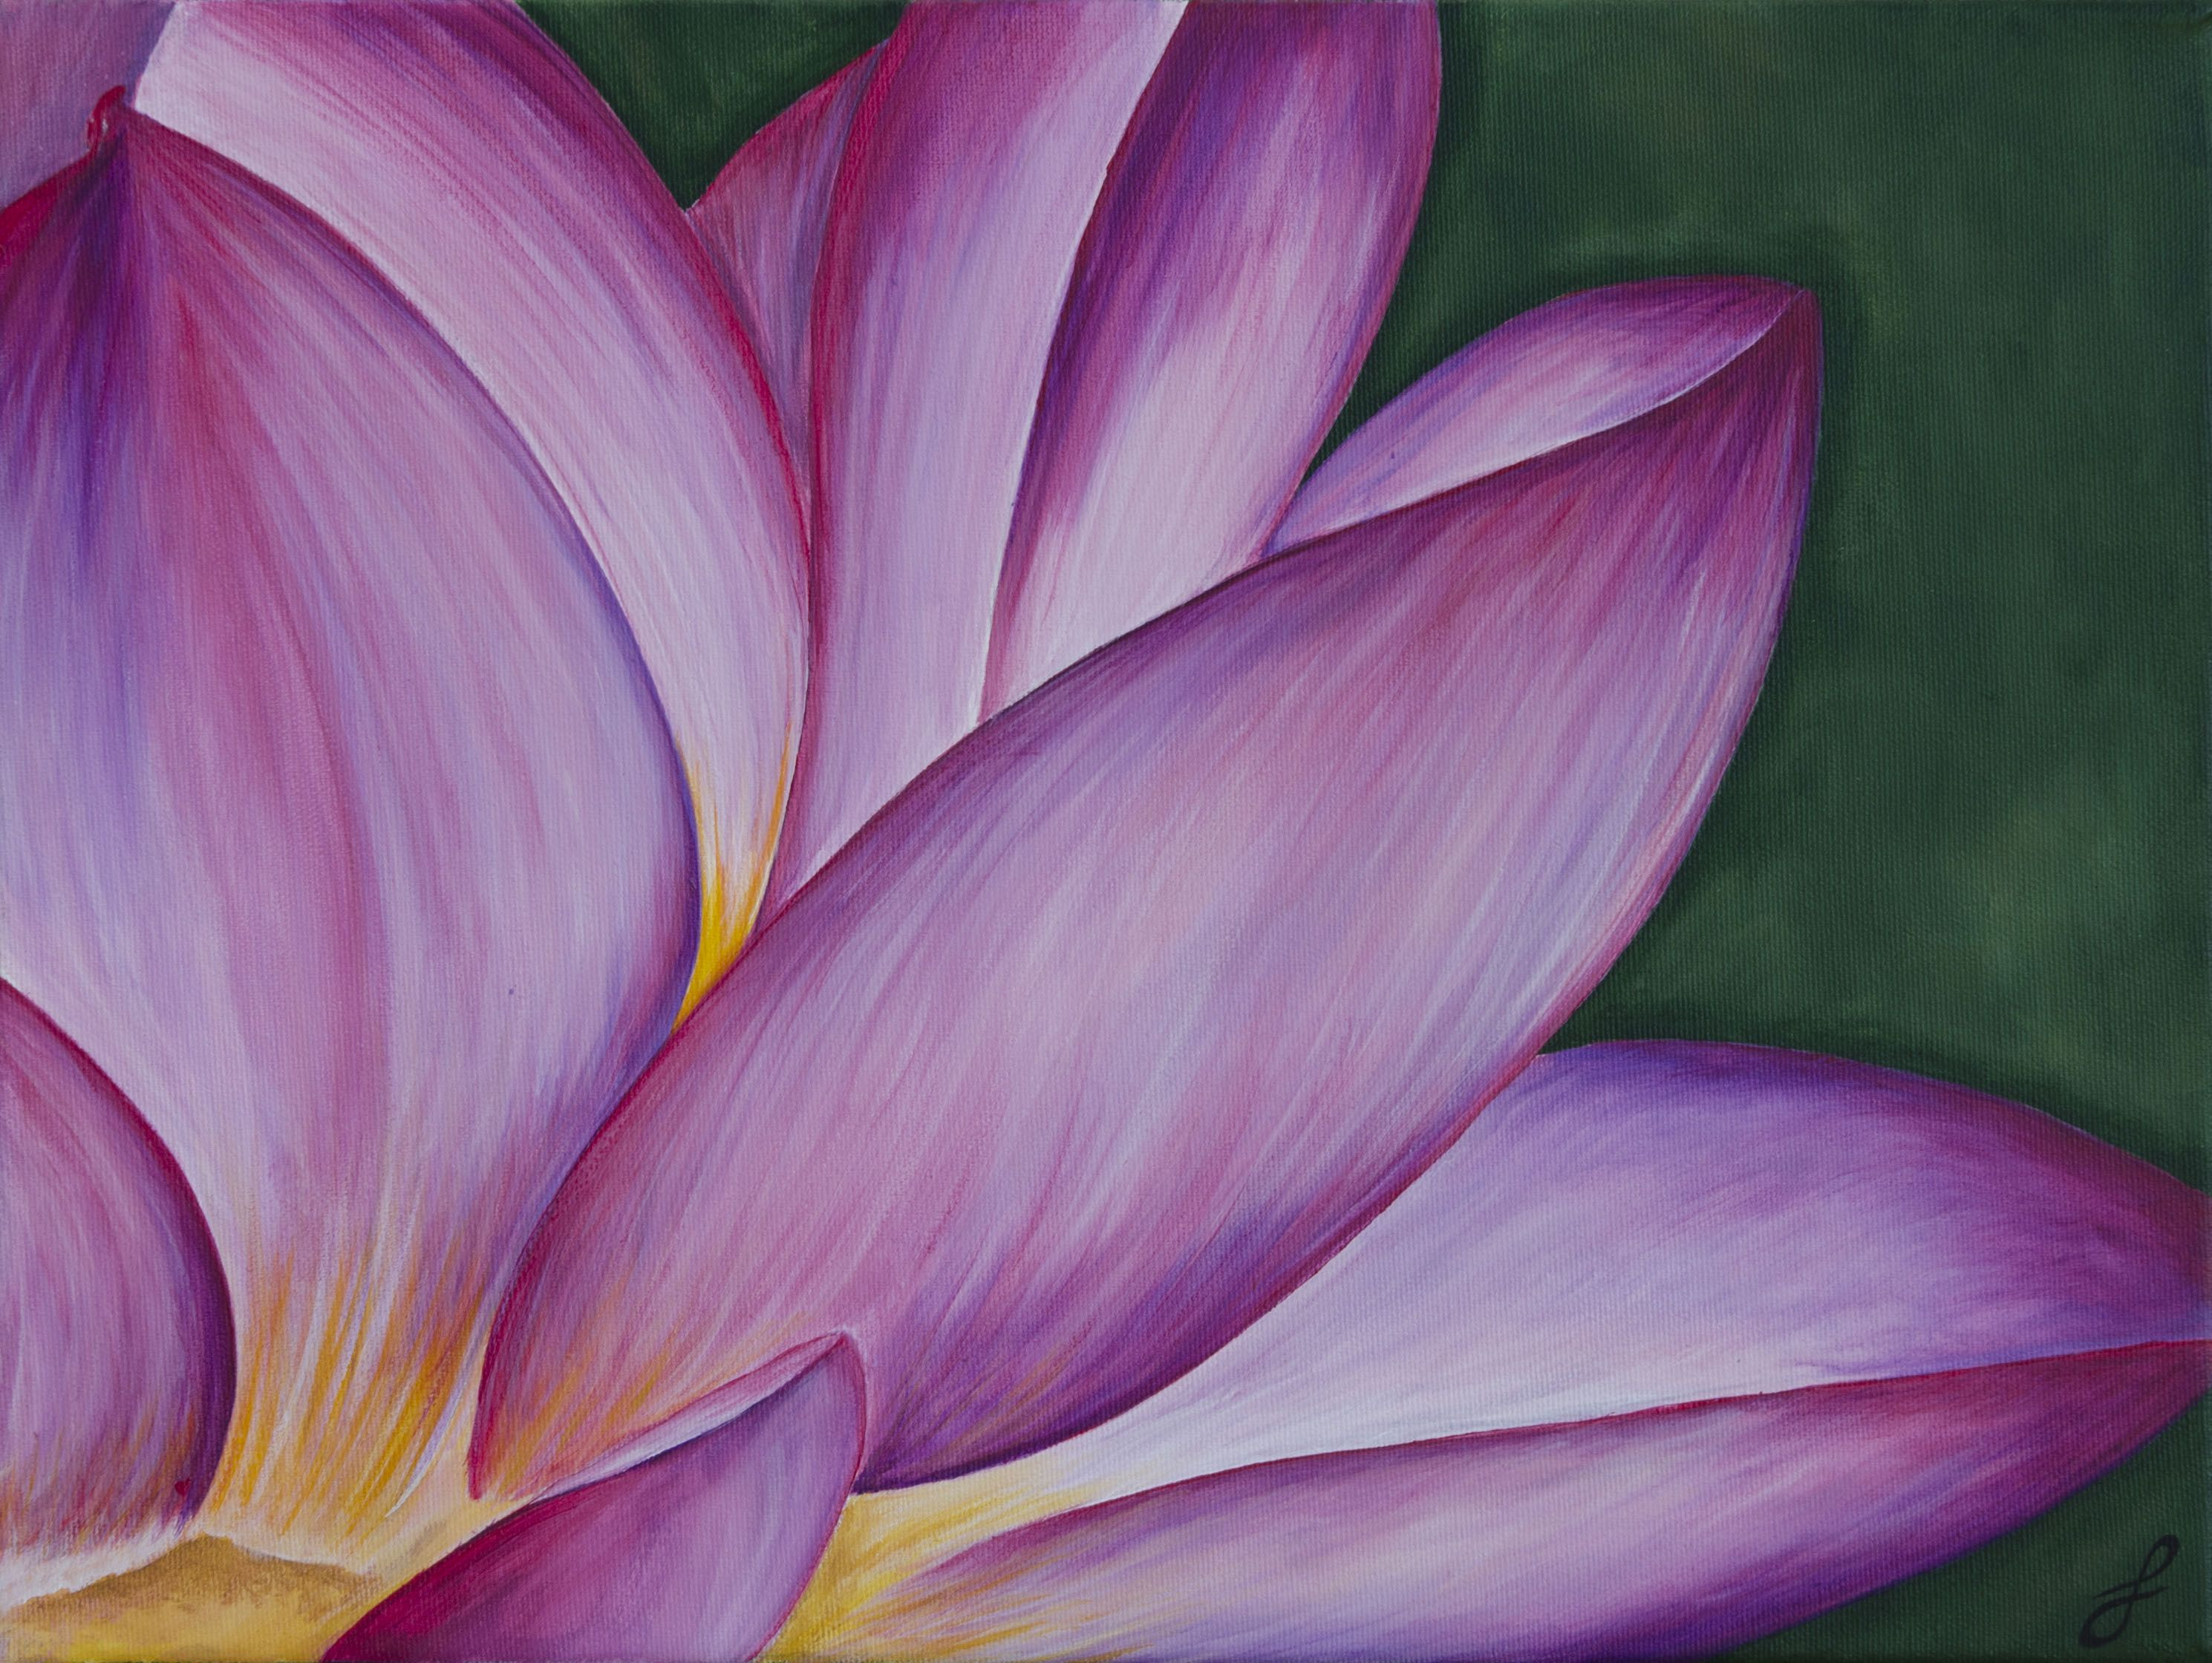 Lotus Flower Acrylic Painting Wwwjennifernoseworthycom I Want To